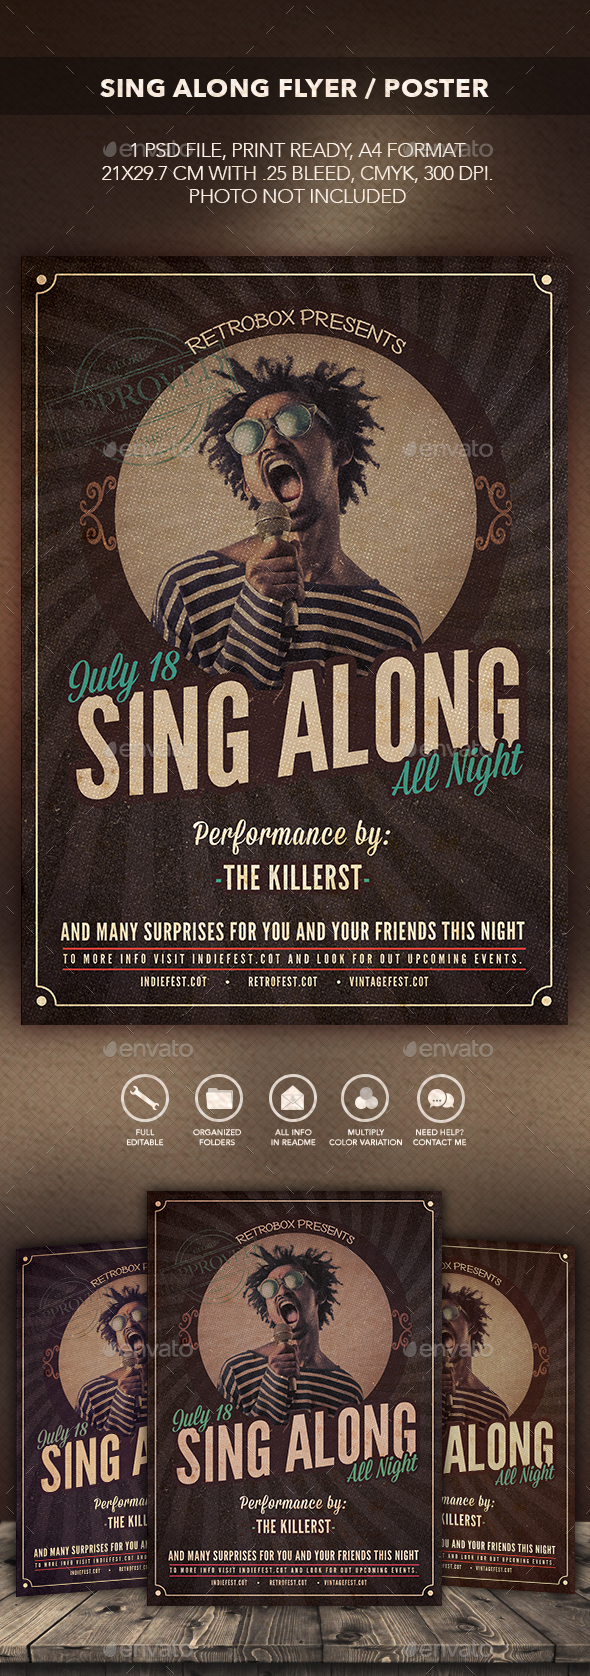 Sing Along Flyer Poster - Flyers Print Templates